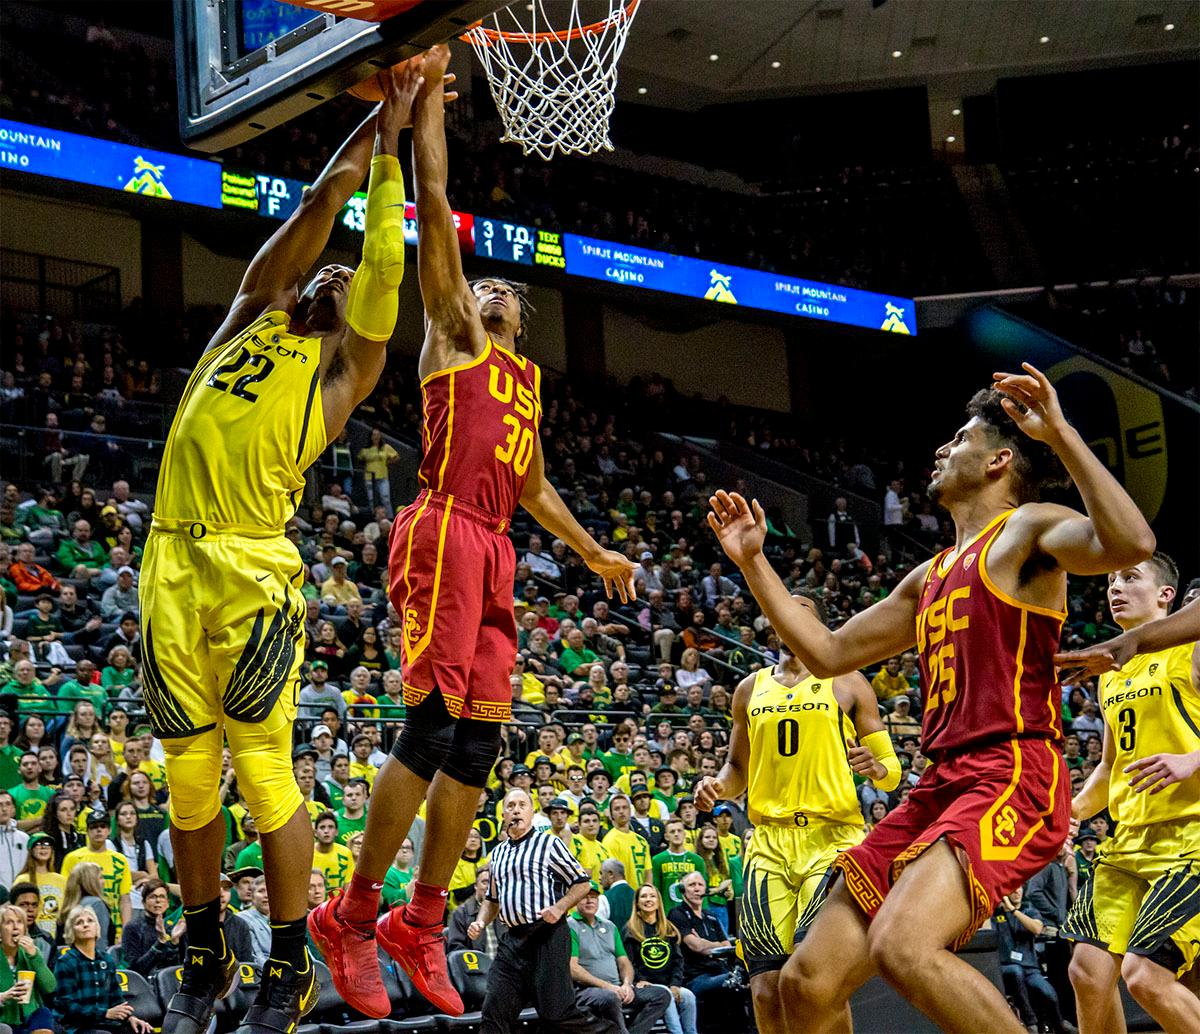 The Duck's MiKyle McIntosh (#22) and the Trojan's Elijah Stewart (#30) compete for the rebound. The UO Ducks basketball team suffered a loss to the USC Trojans, 75-70, at Matthew Knight Arena on Thursday. Payton Pritchard lead the scoring with 18 points. The Ducks are now 2-4 in conference play and 12-7 overall. The Ducks will next play the UCLA at Matthew Knight Arena at 7:15 p.m. on Saturday, Jan. 20. Photo by August Frank, Oregon News Lab